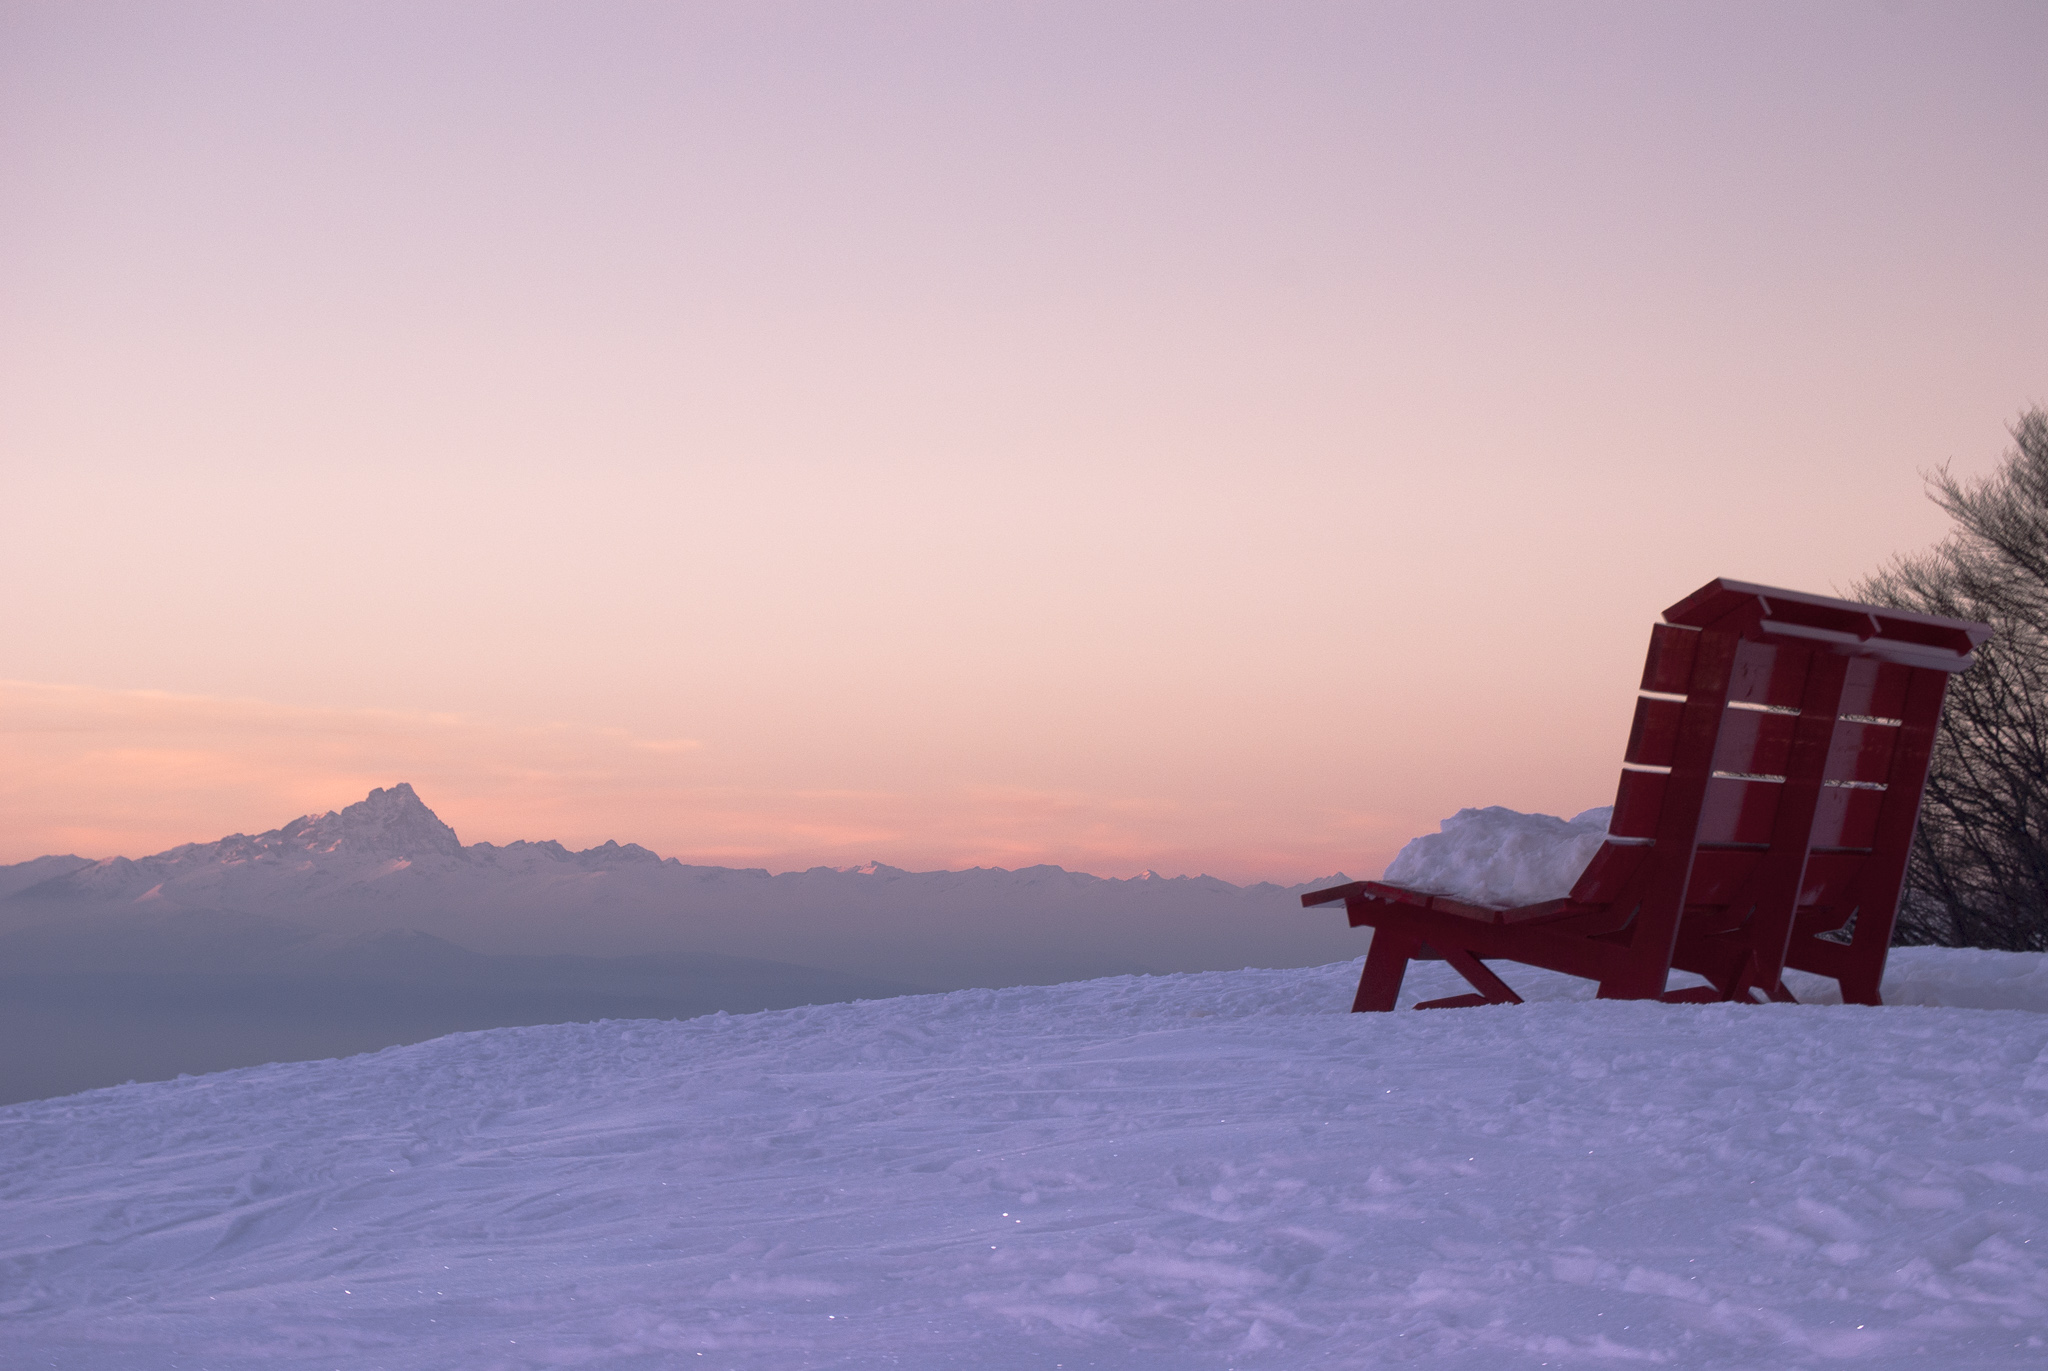 The Big Bench and the Mount Viso, Italy